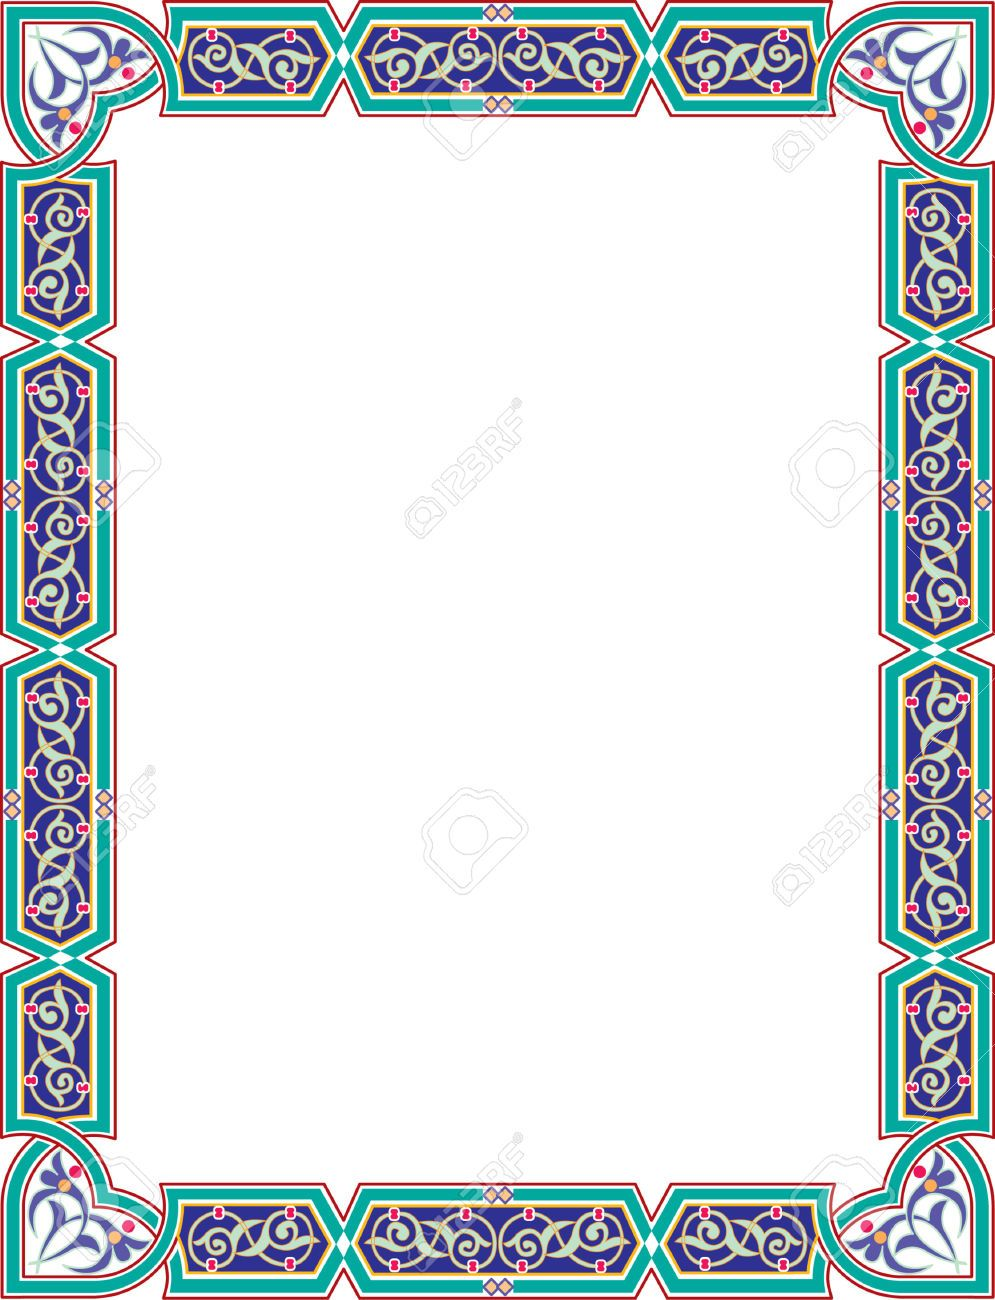 23185793 islamic style border frame with elegant vector for Exclusive bordering